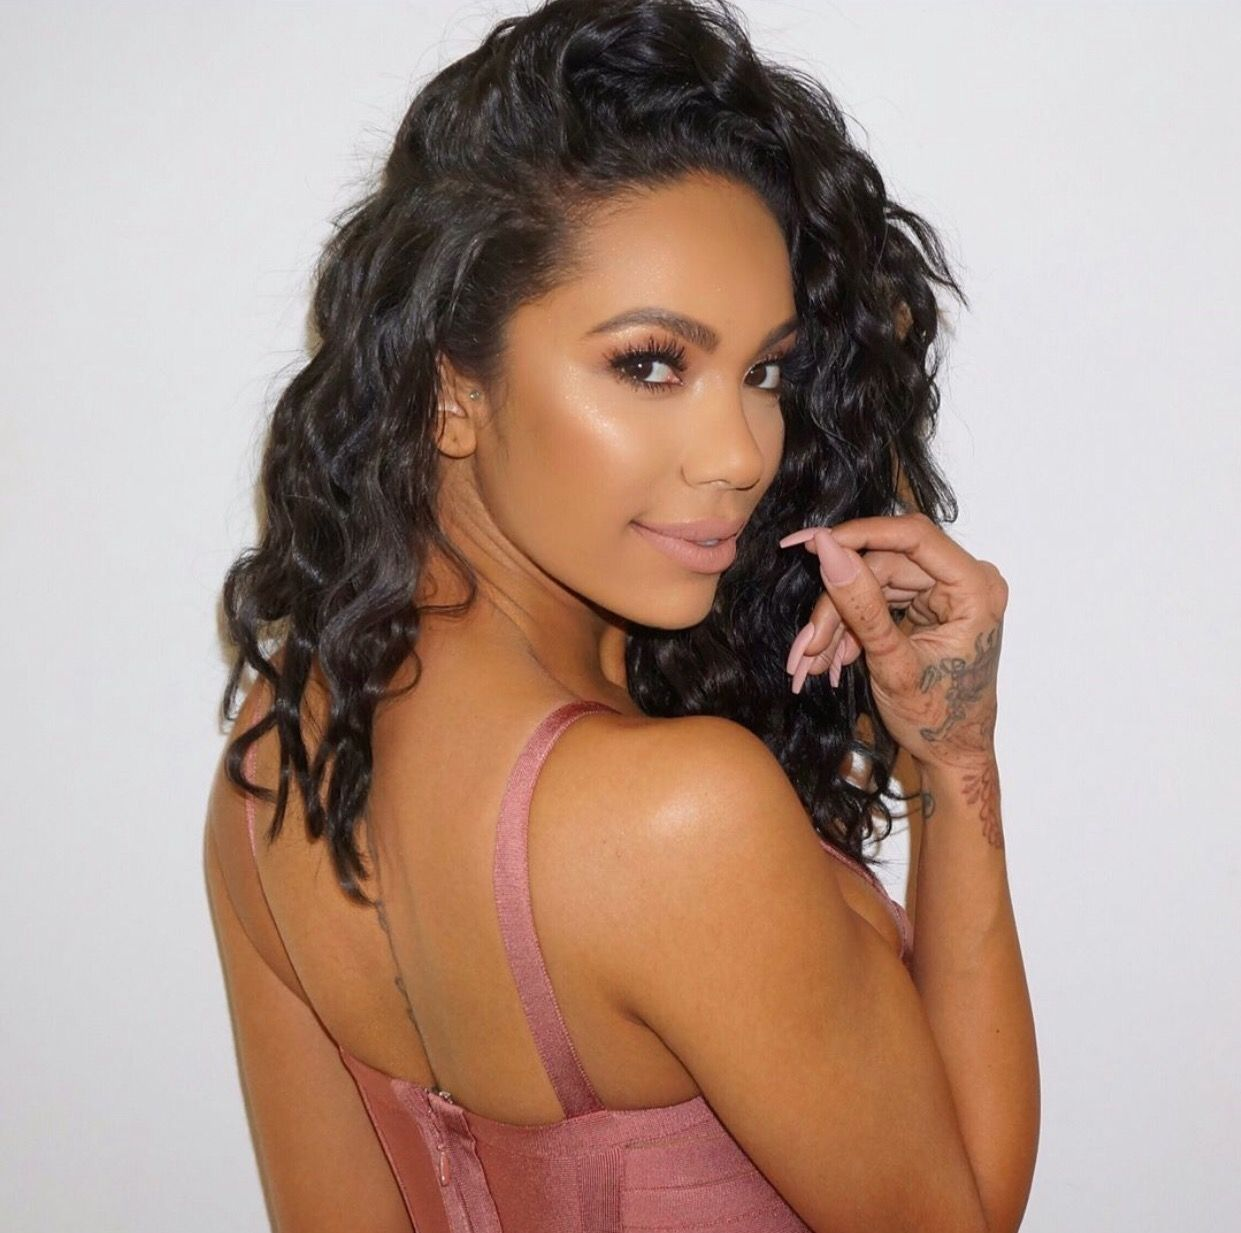 erica-mena-shares-an-uplifting-message-for-all-women-out-there